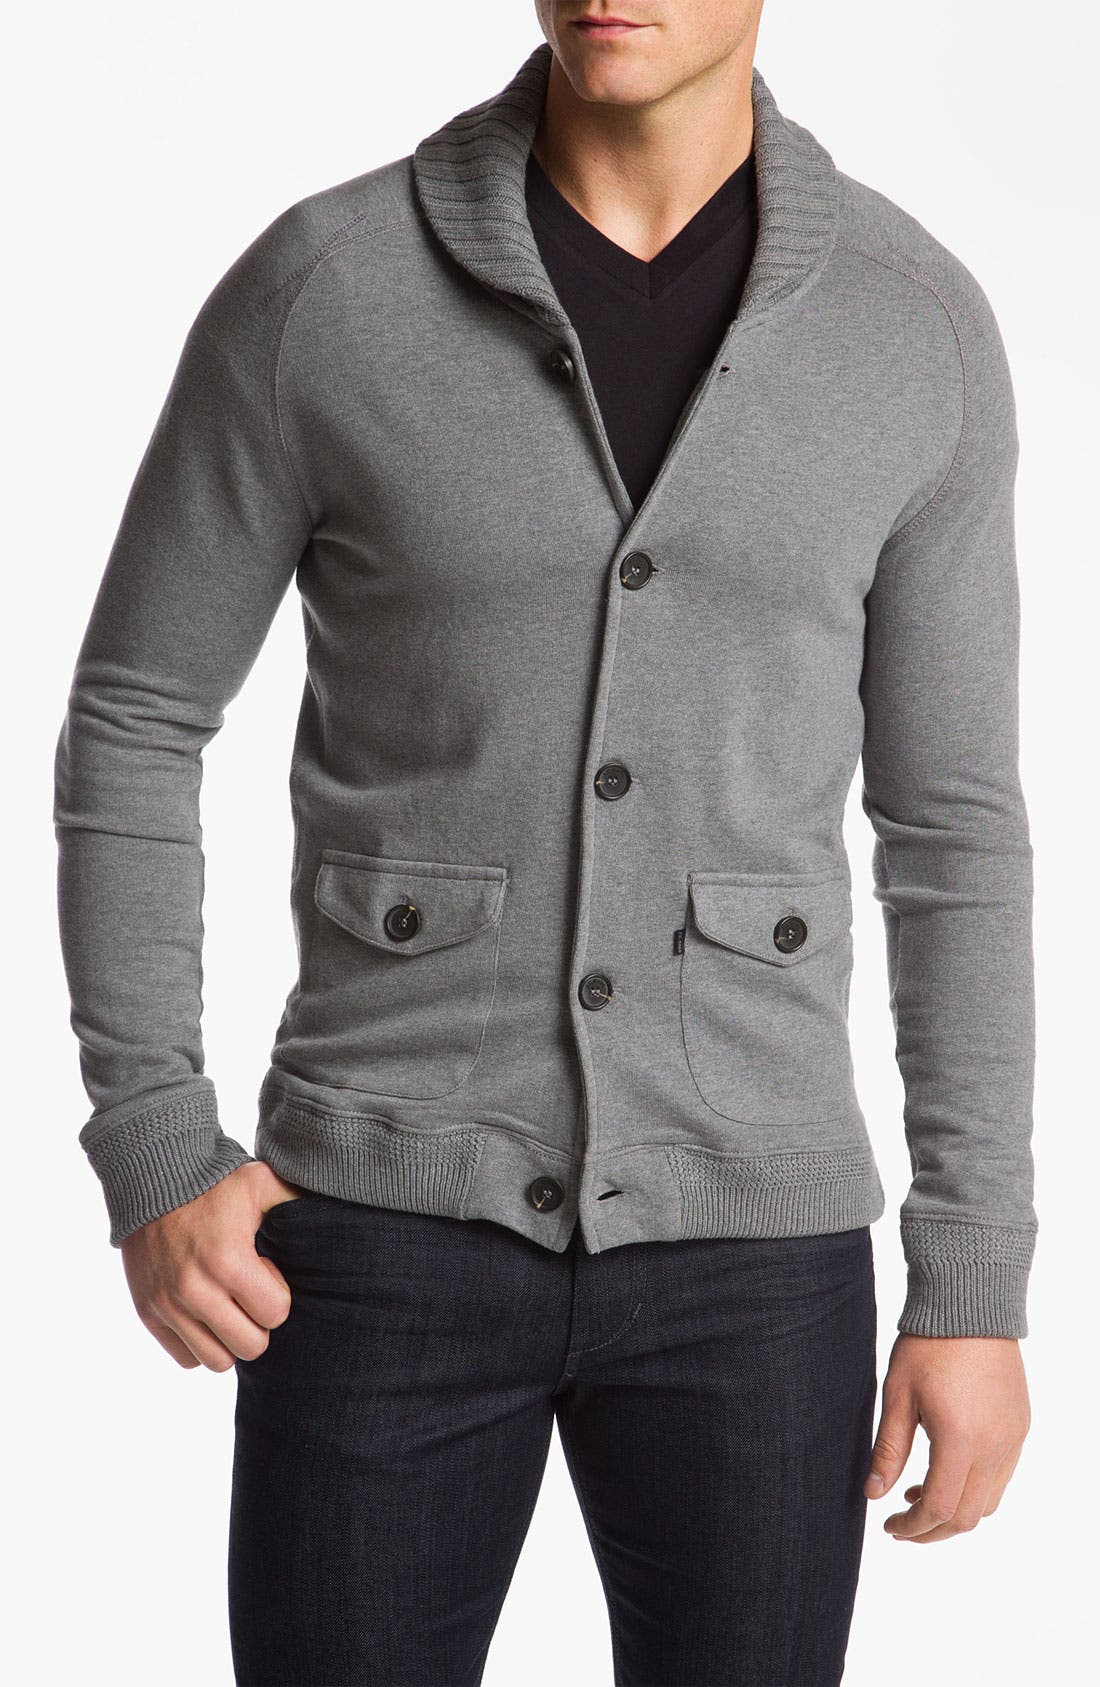 Alternate Image 1 Selected - J.C. Rags Extra Trim Fit Shawl Collar Cardigan